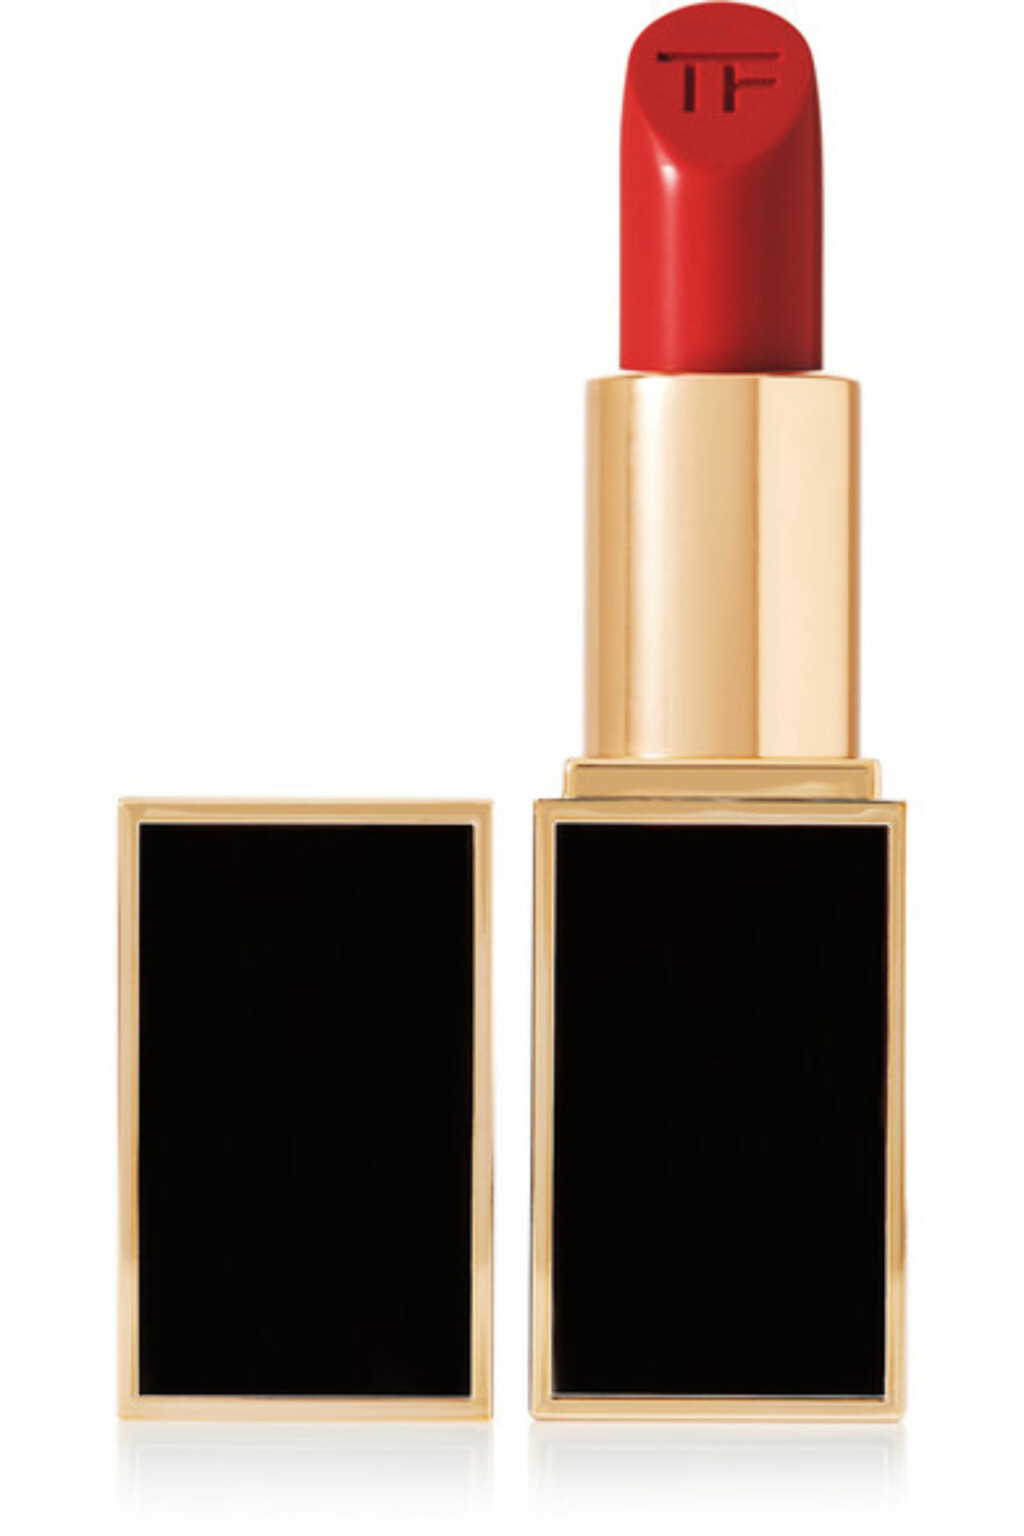 Leppestift fra Tom Ford via Net-a-porter.com | kr 424